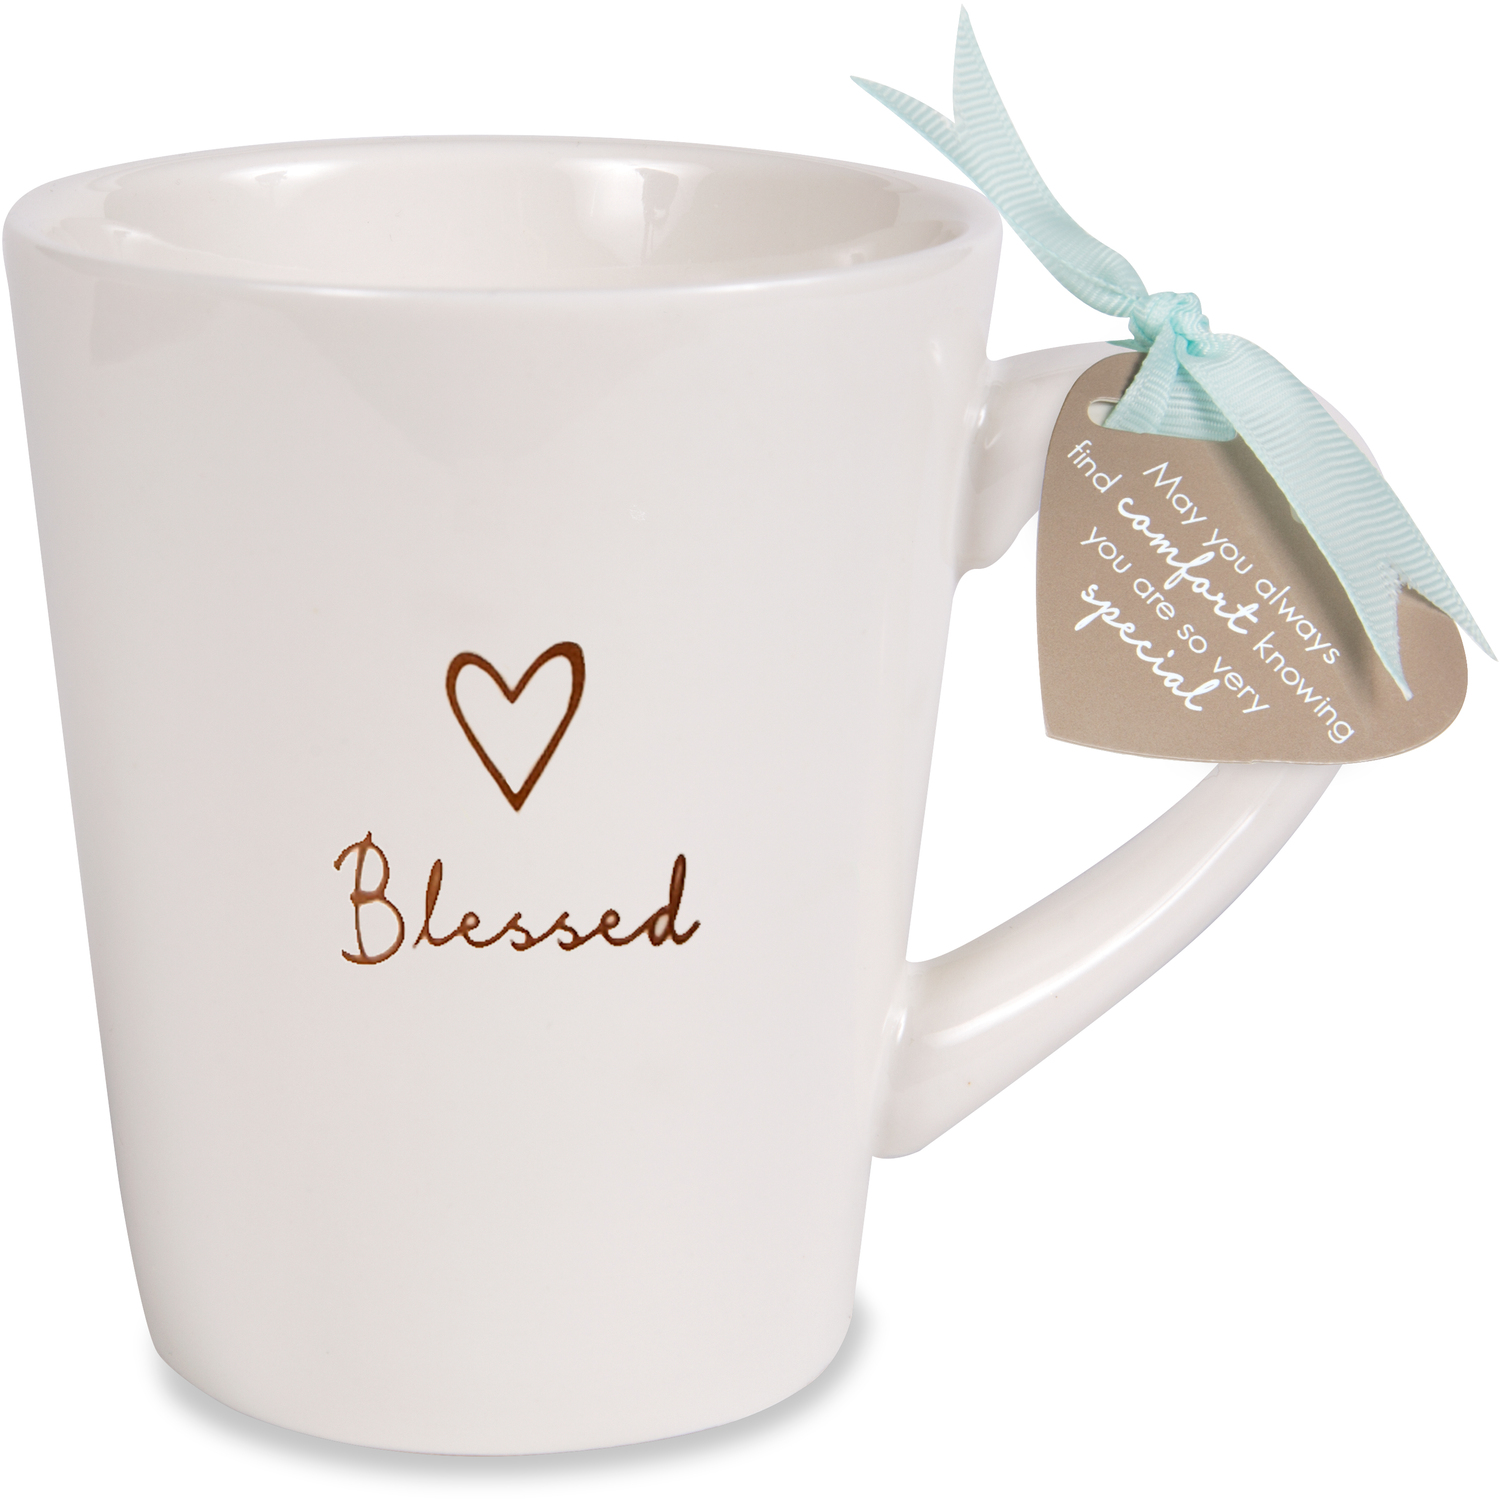 Blessed by Comfort Collection - Blessed - 15 oz Cup